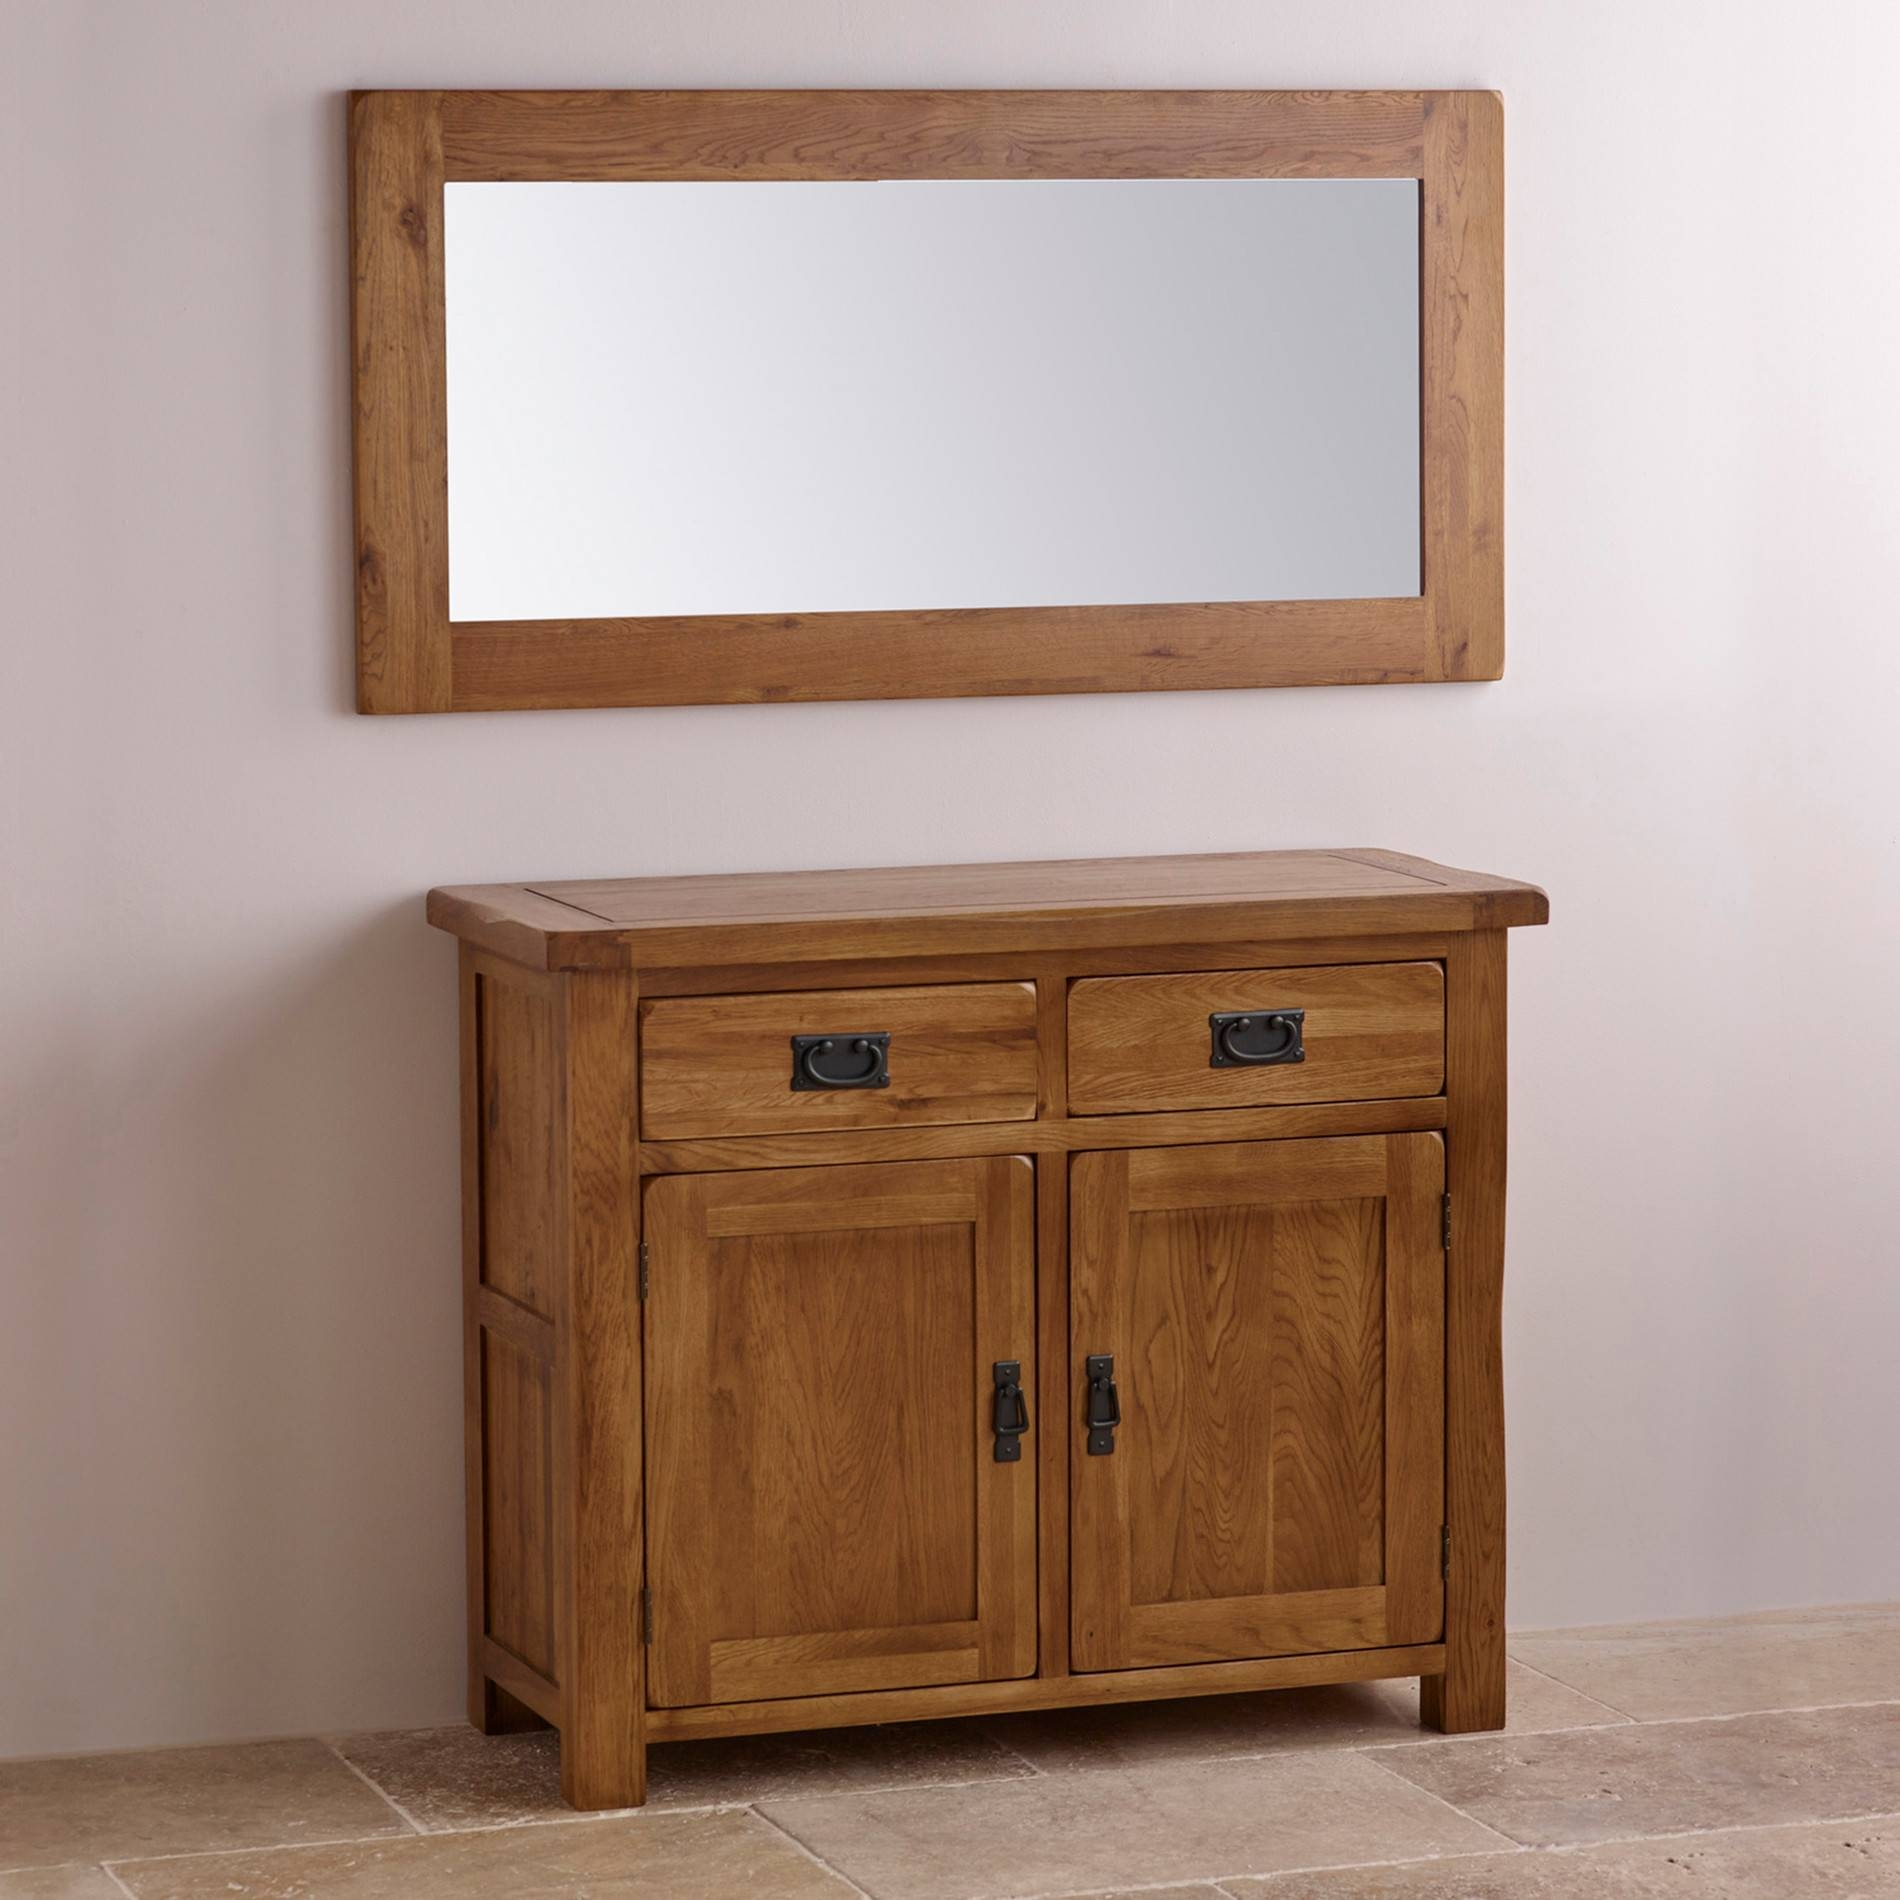 Mirrors | Bring Light To Your Room | Oak Furniture Land intended for Large Oak Framed Mirrors (Image 7 of 25)